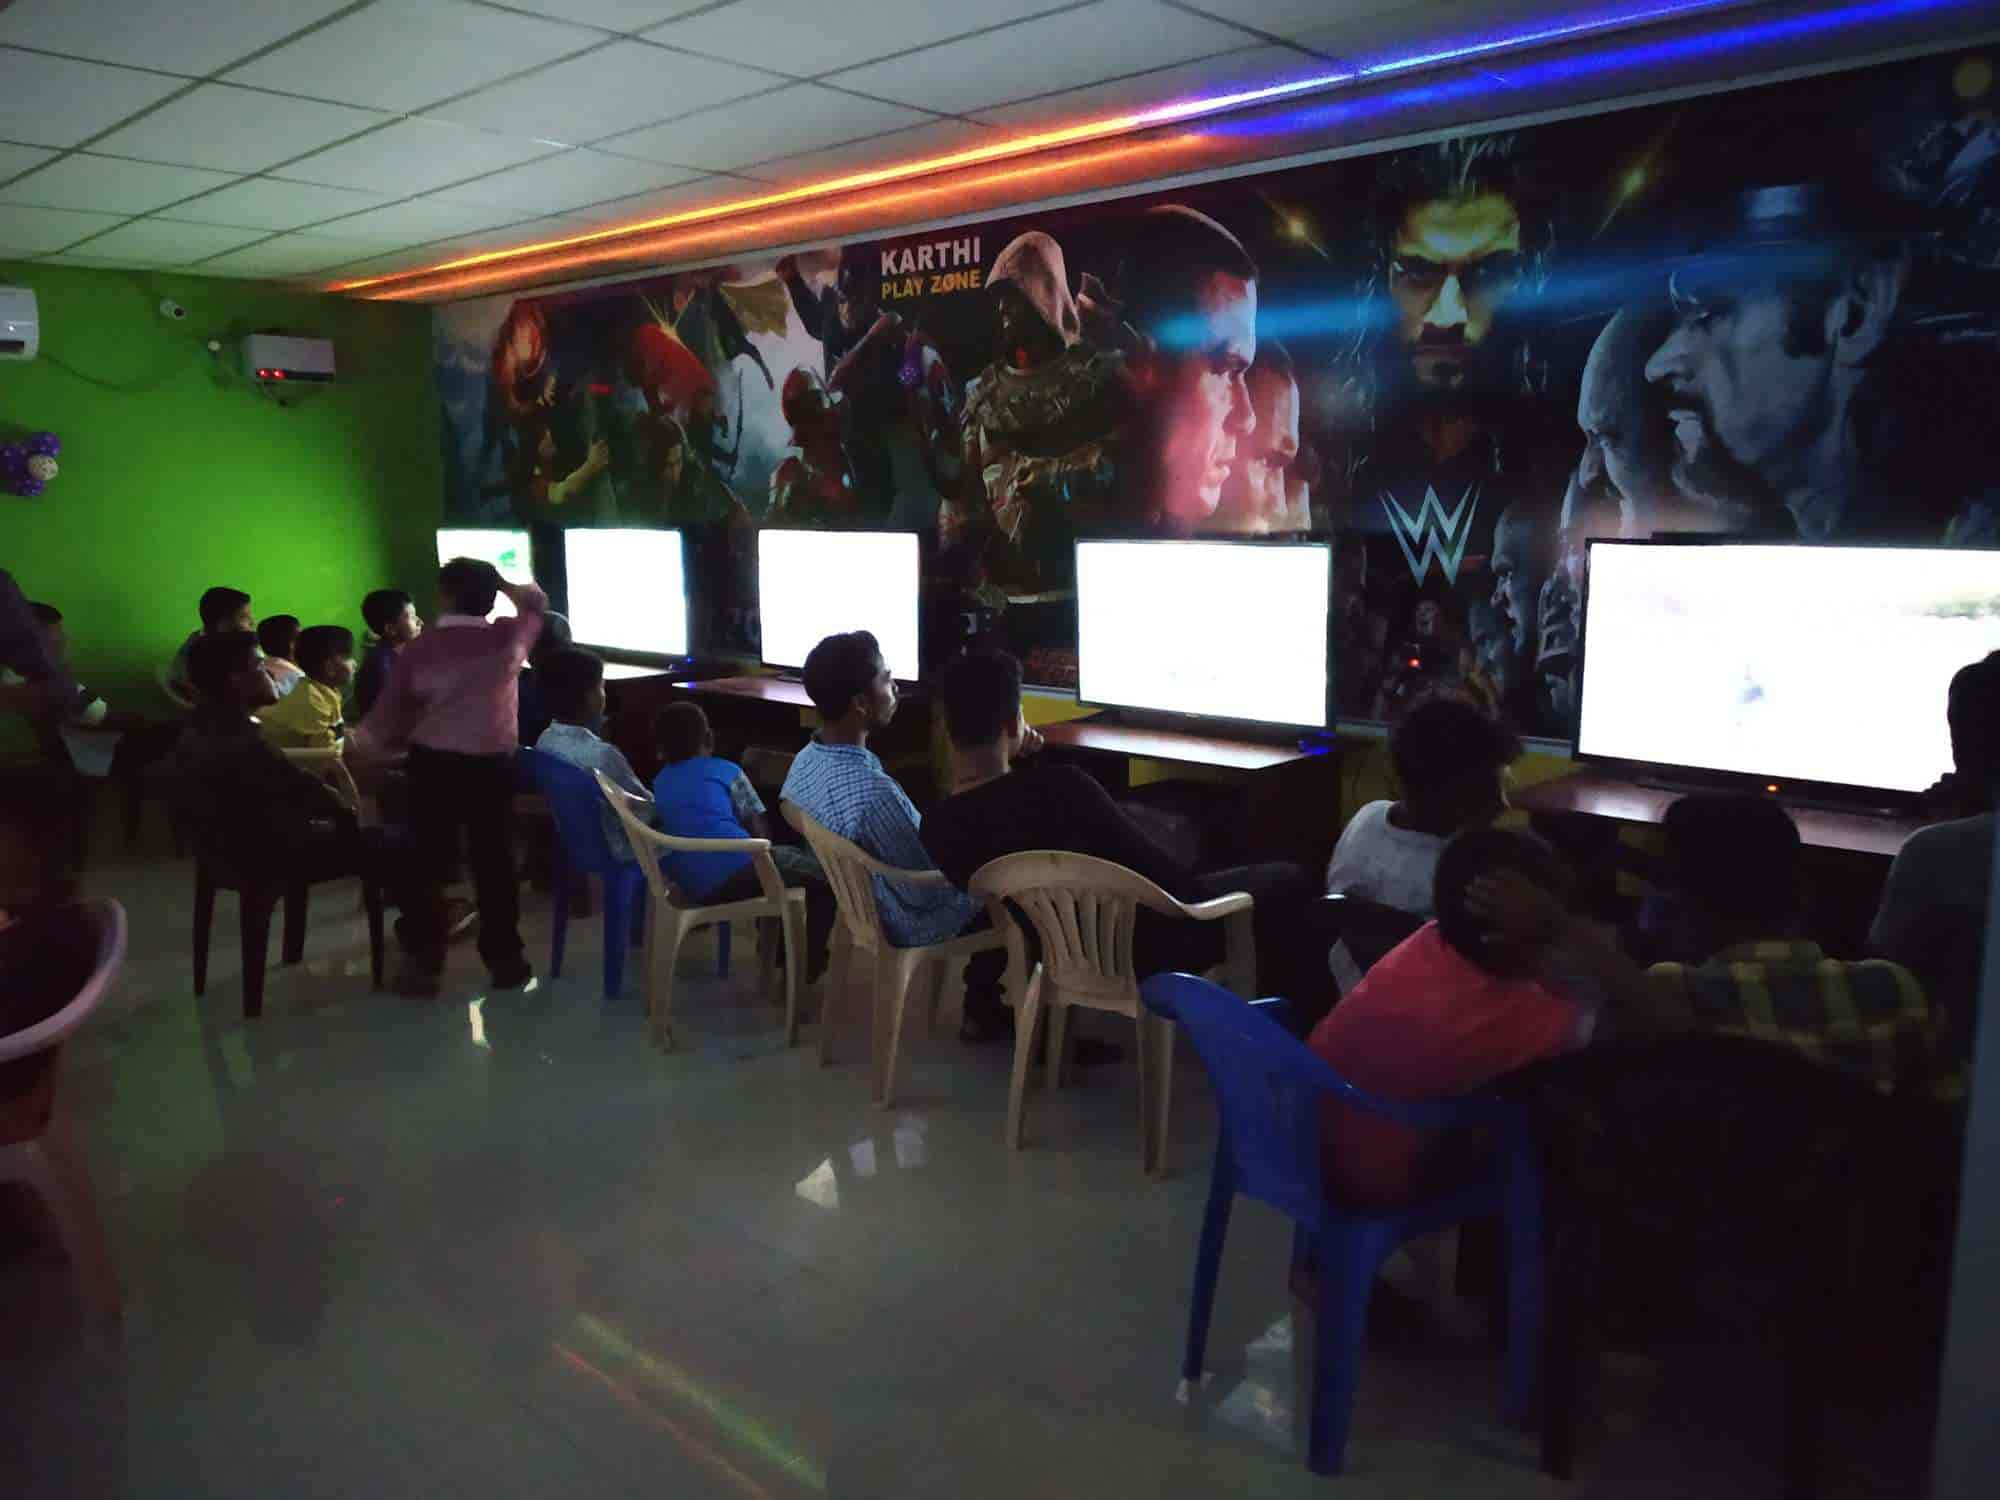 Karthi Playzone, Near to IDBI Bank - Gaming Console Dealers